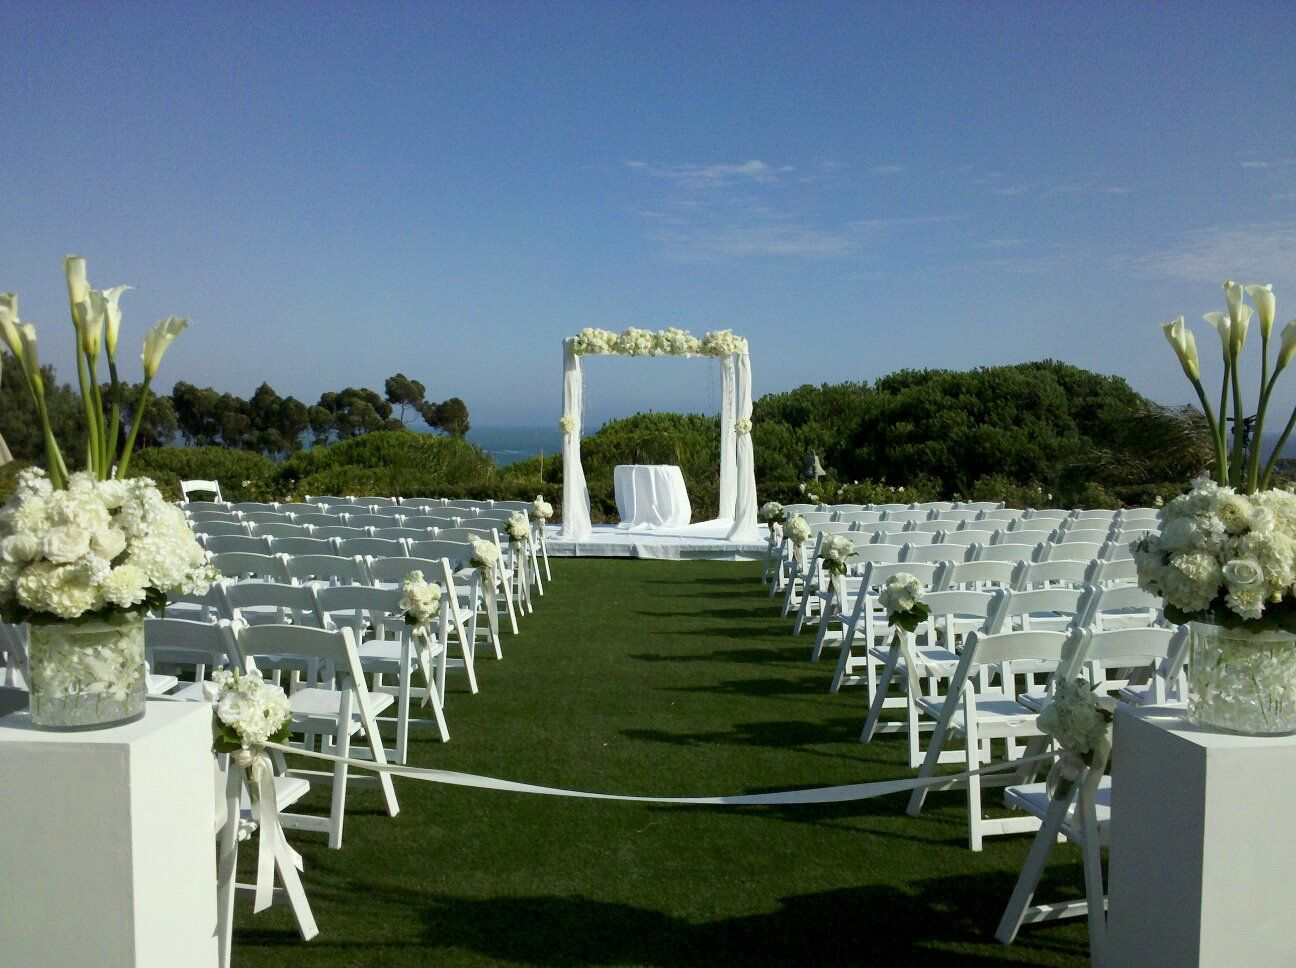 a130e86039fbf532e95ddb82185a1468 - beach wedding venues orange county